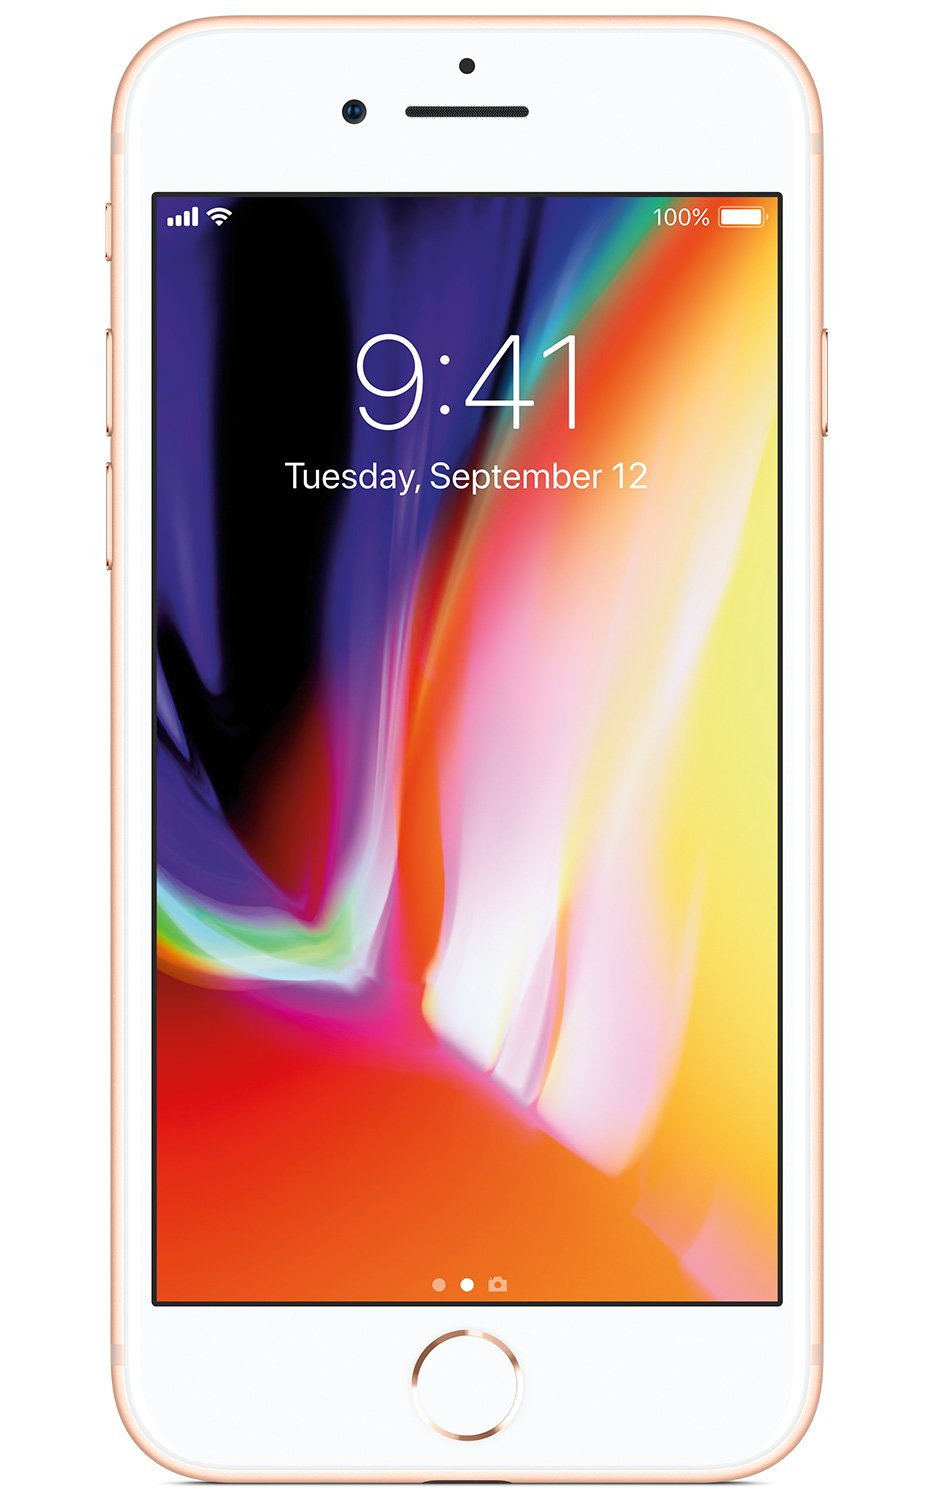 apple-iphone8-gold-1-3x.jpg